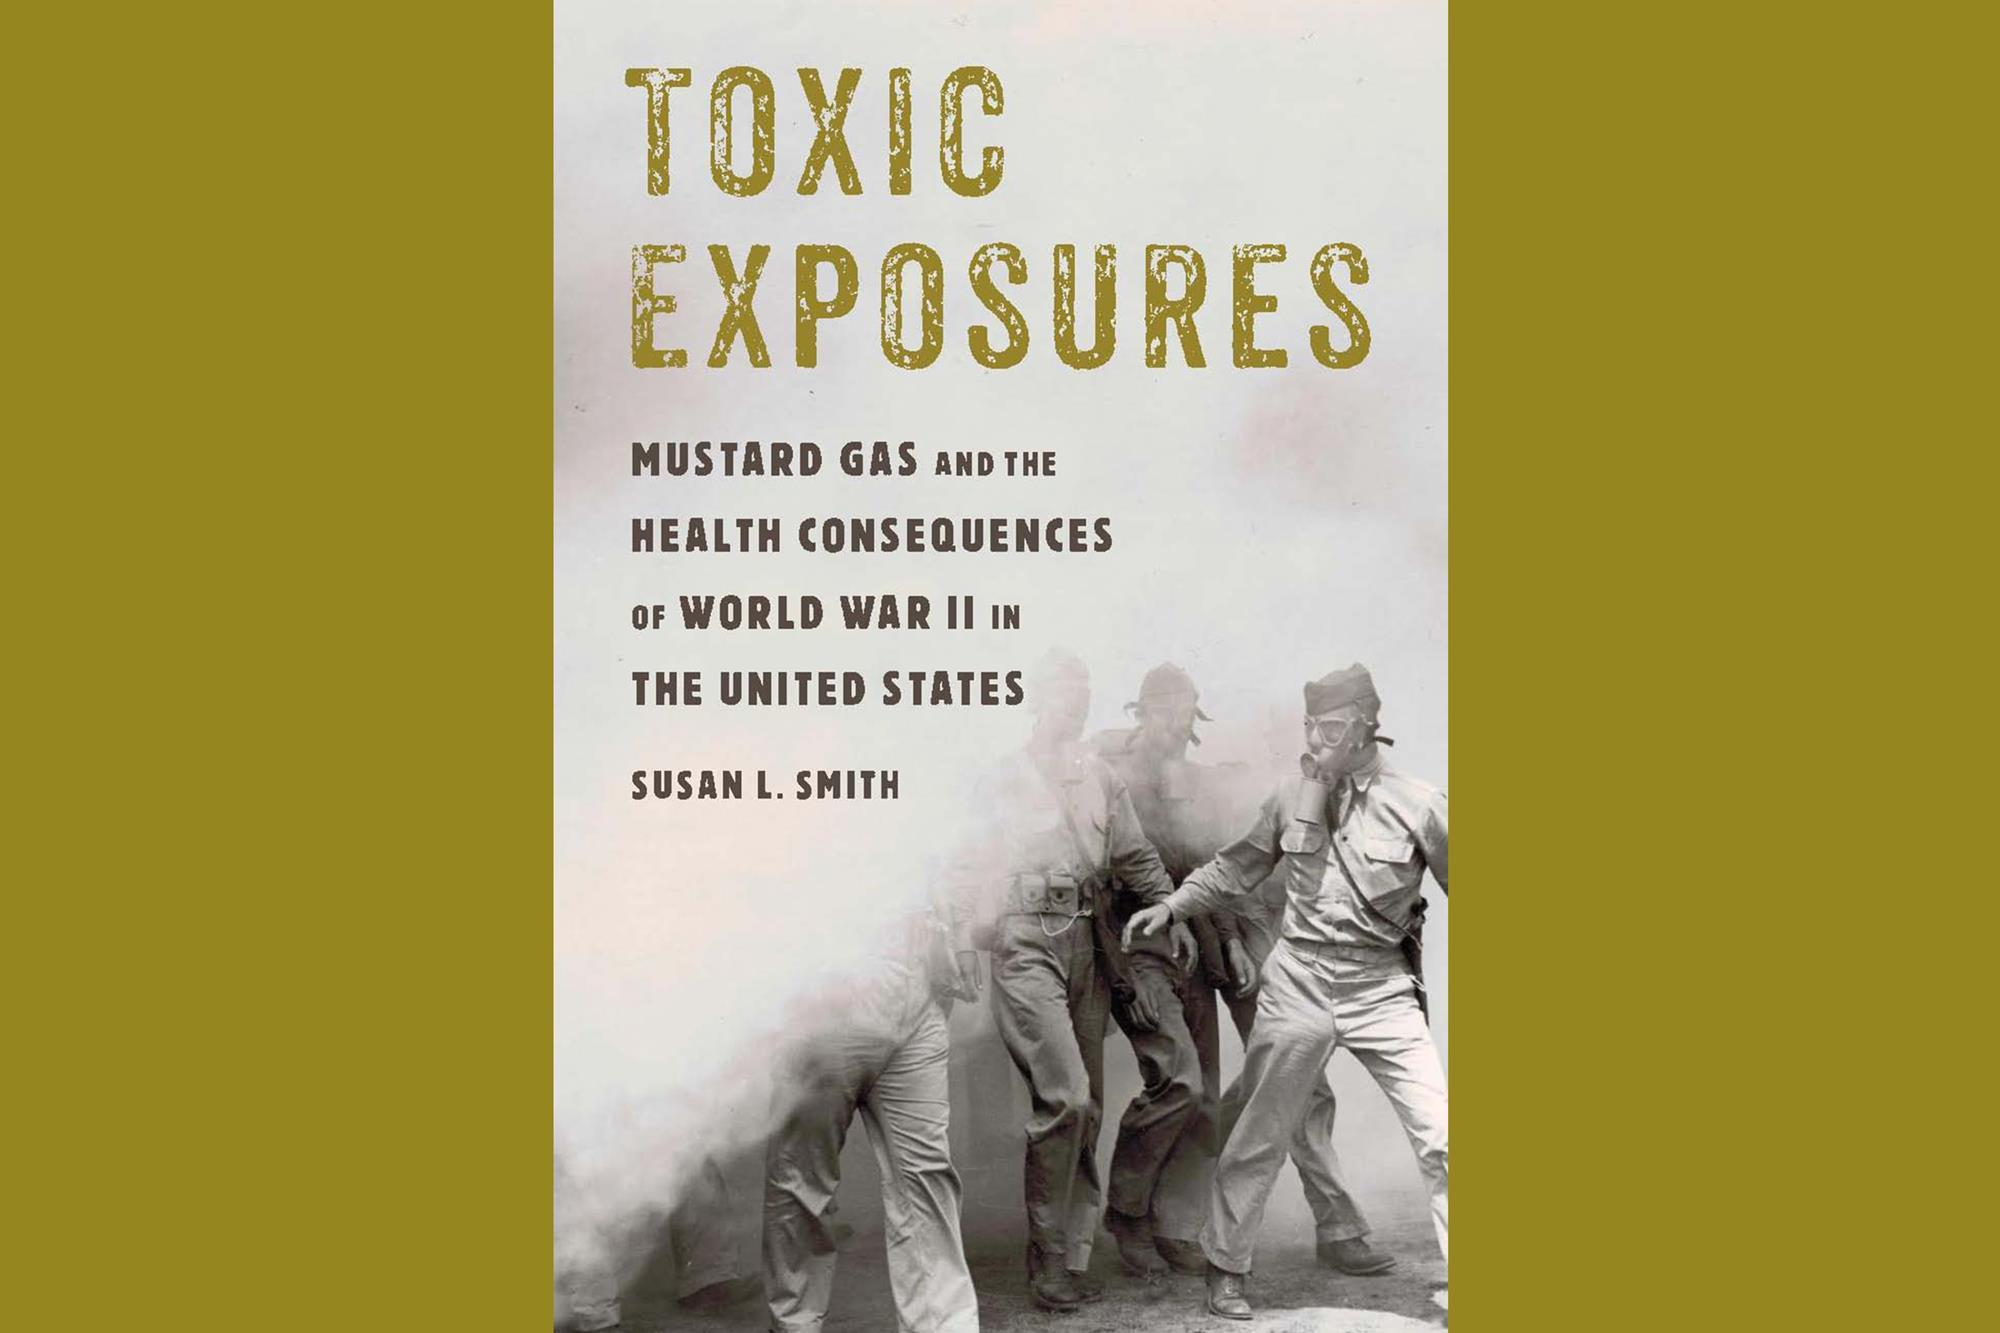 Toxic exposures: mustard gas and the health consequences of world